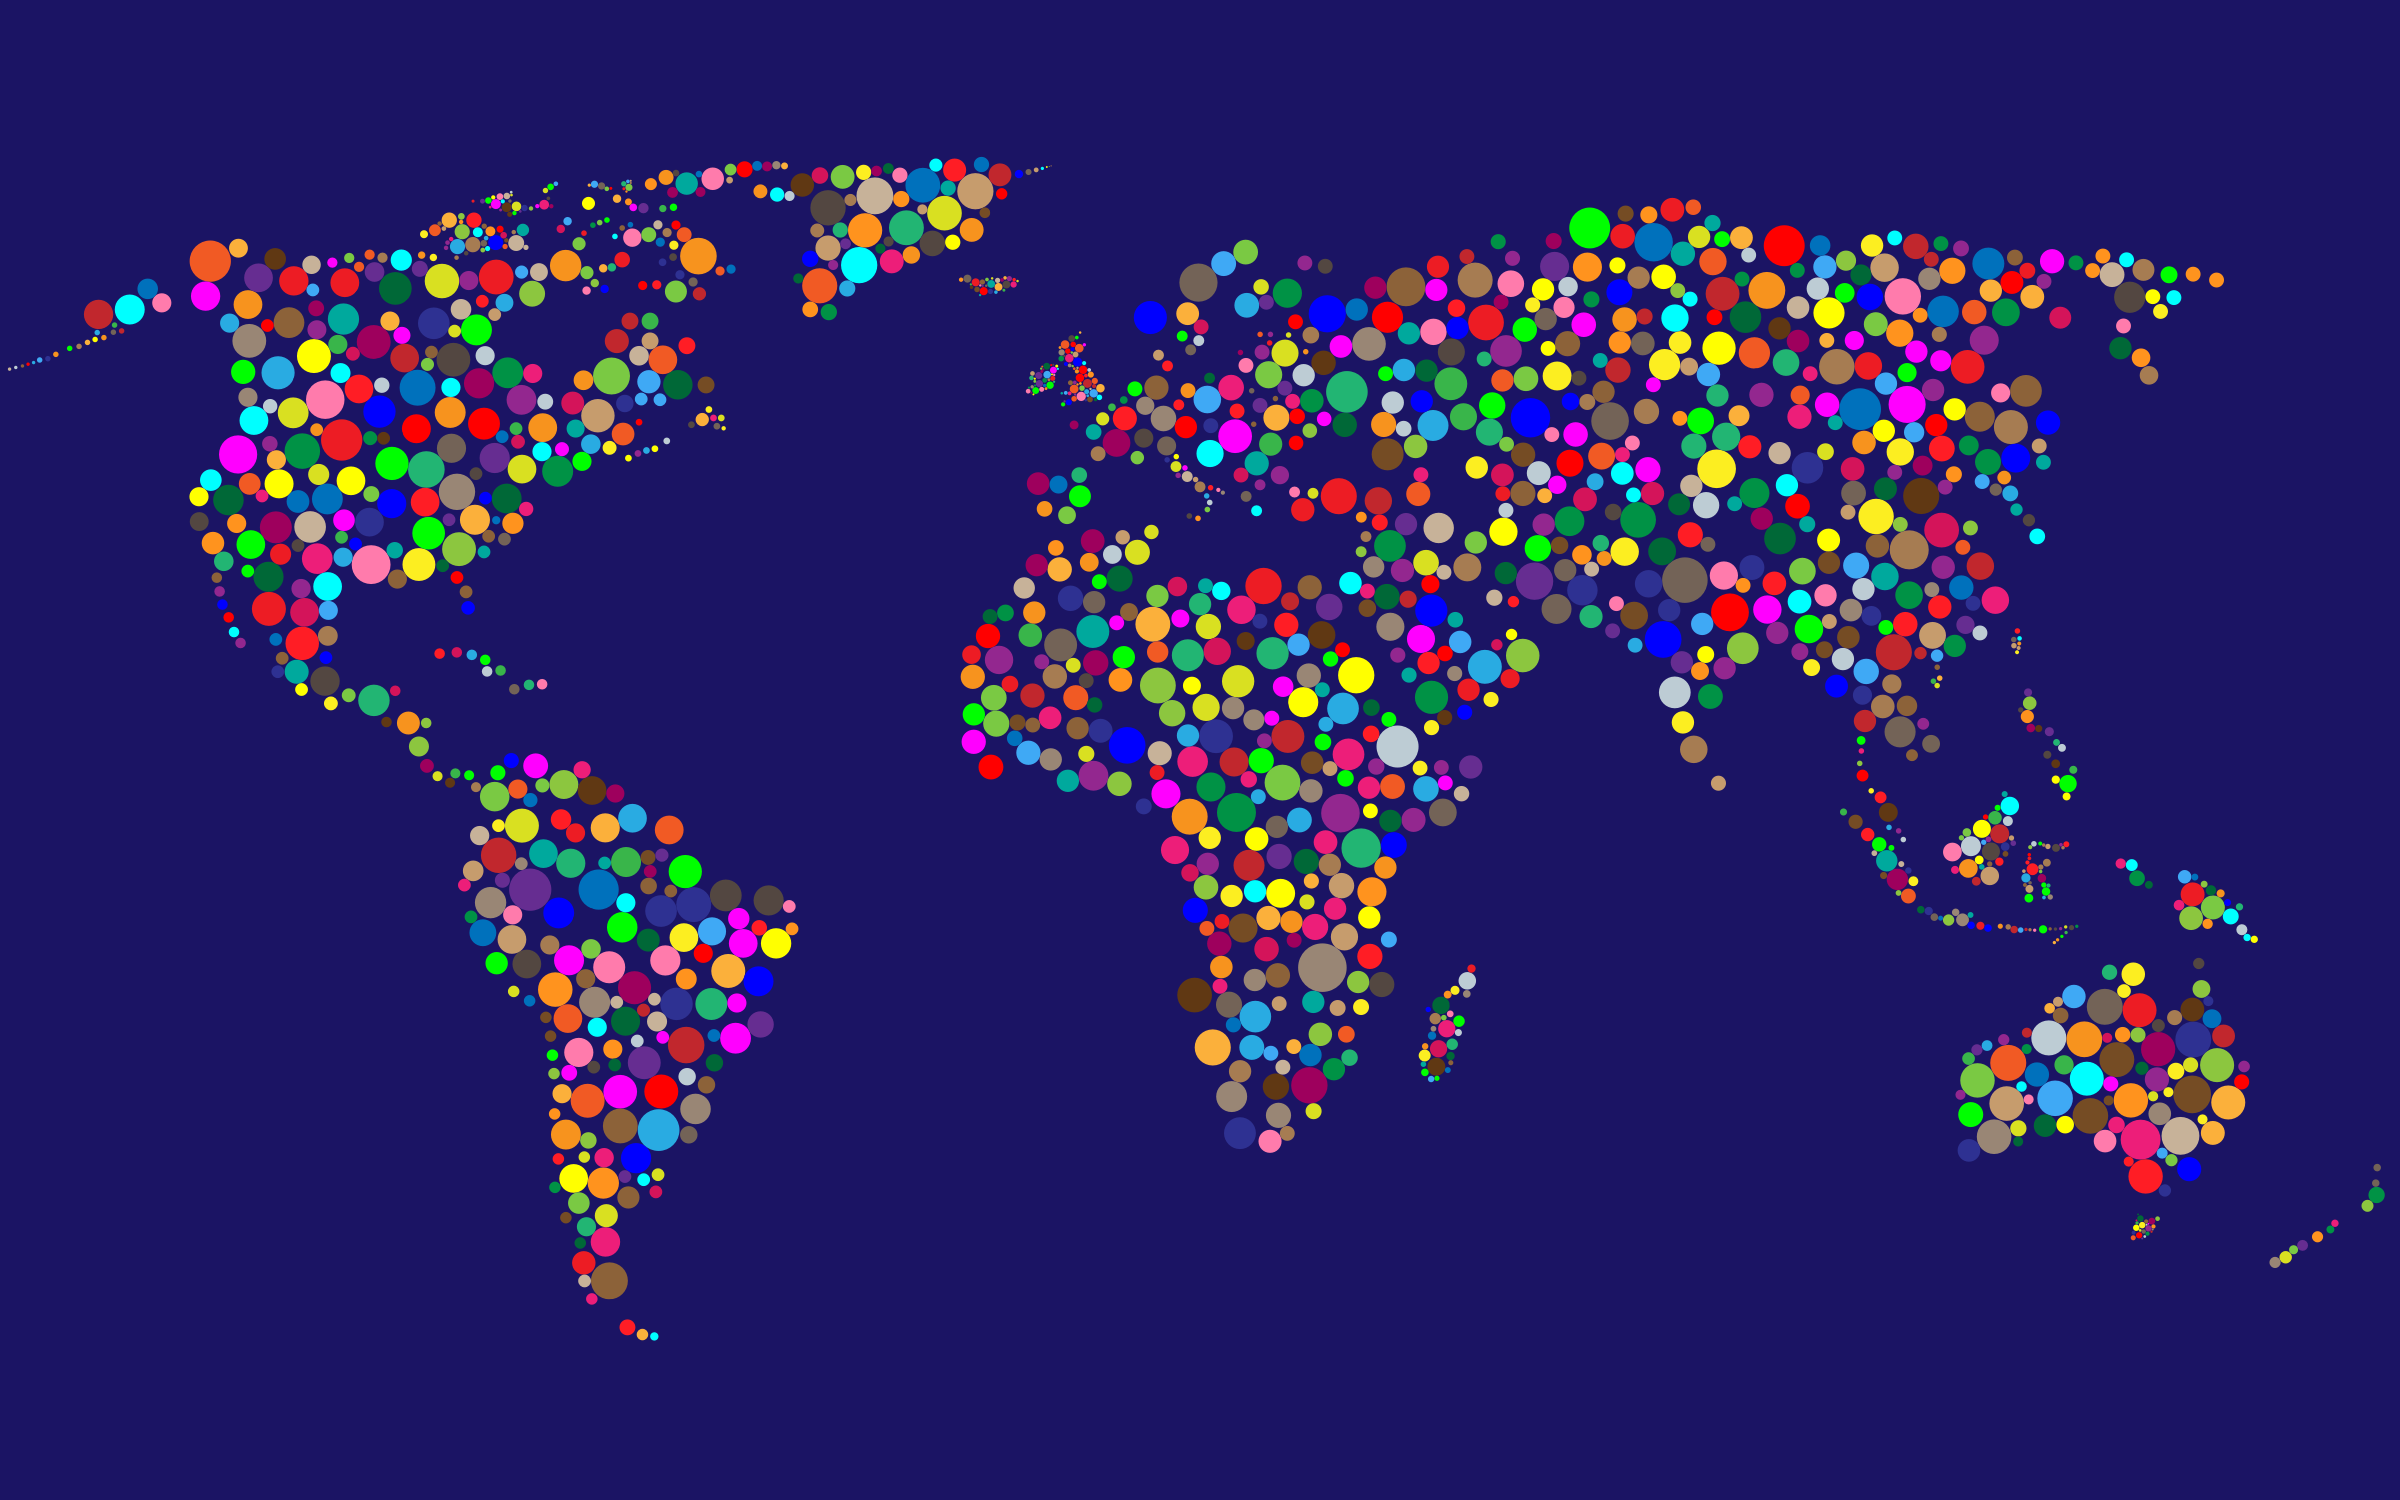 Colorful Circles World Map With Background 4 by GDJ